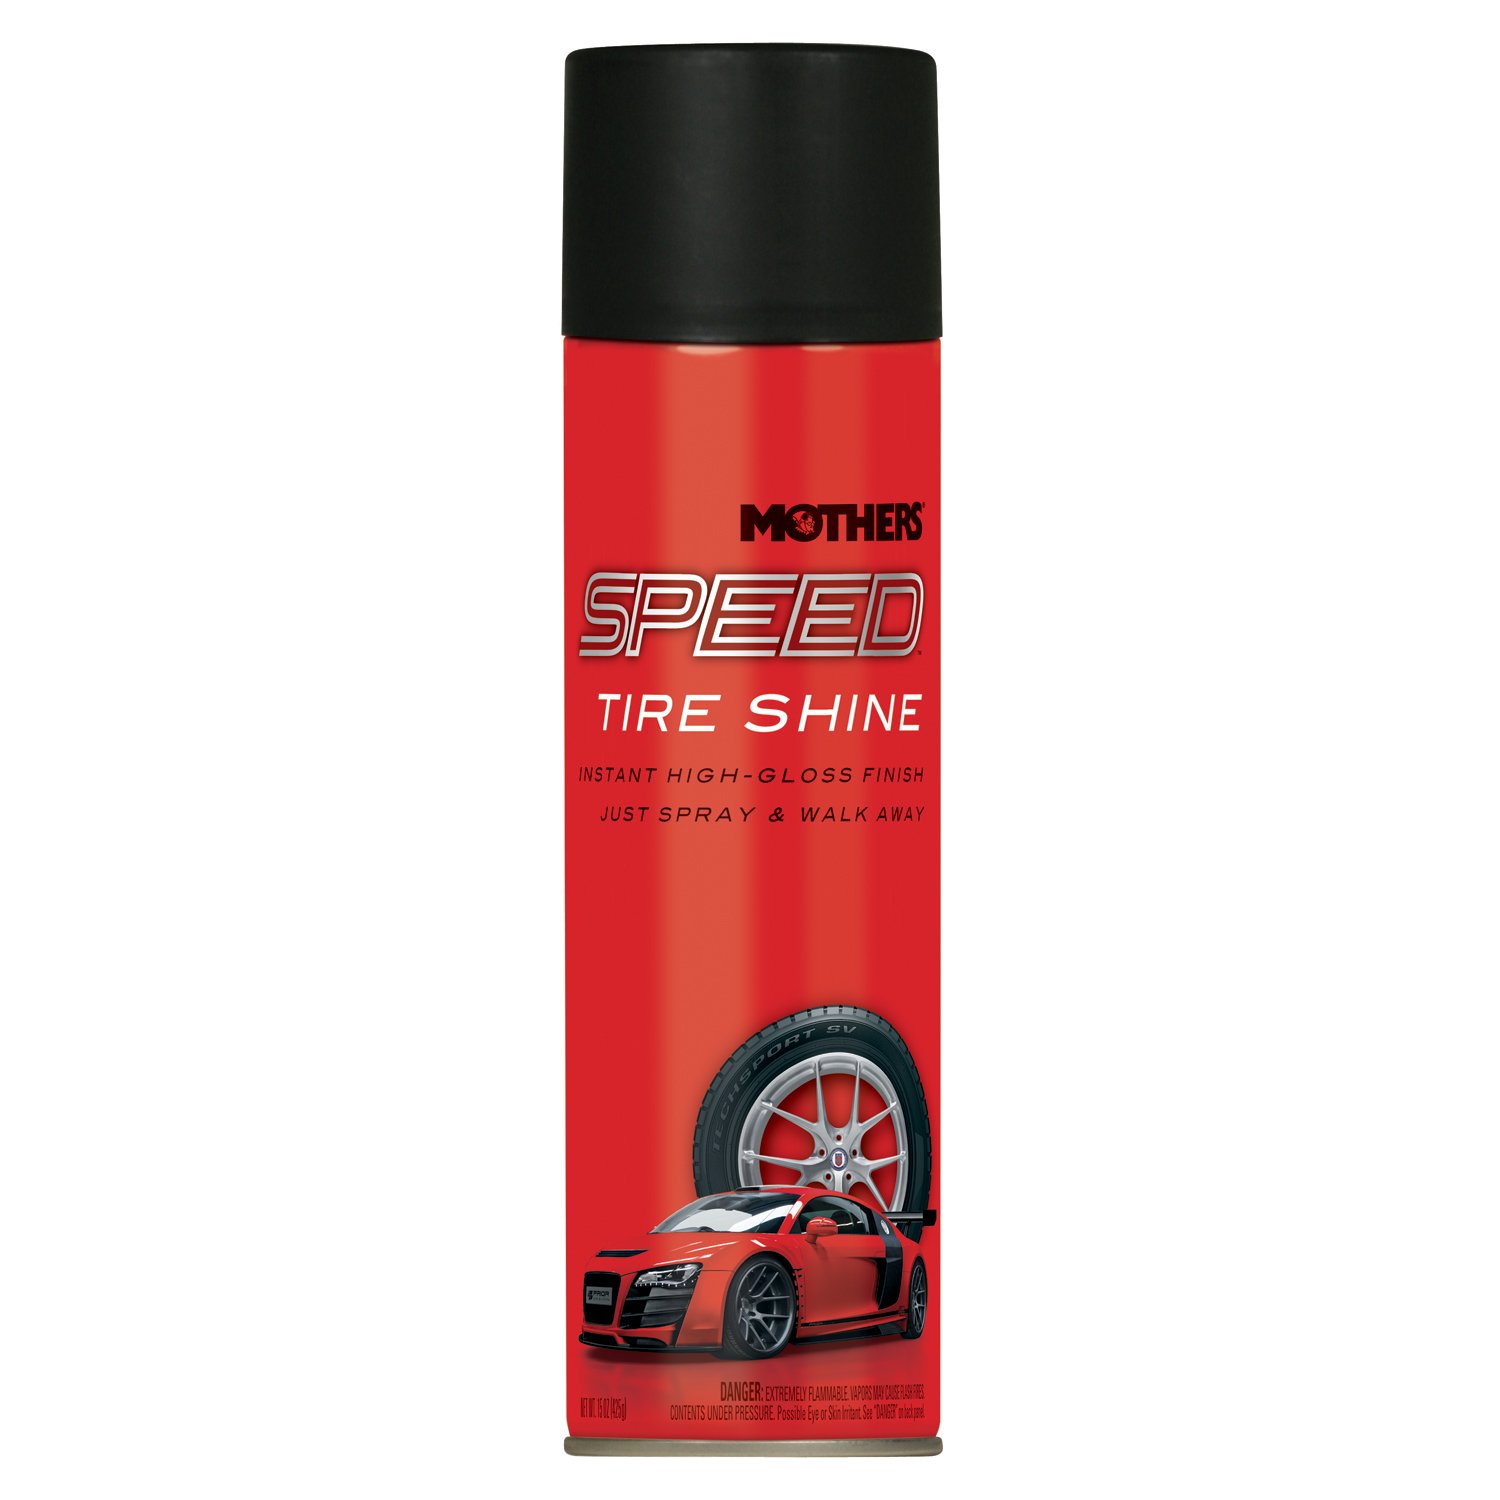 Mothers Speed Tire Shine 15oz. Can